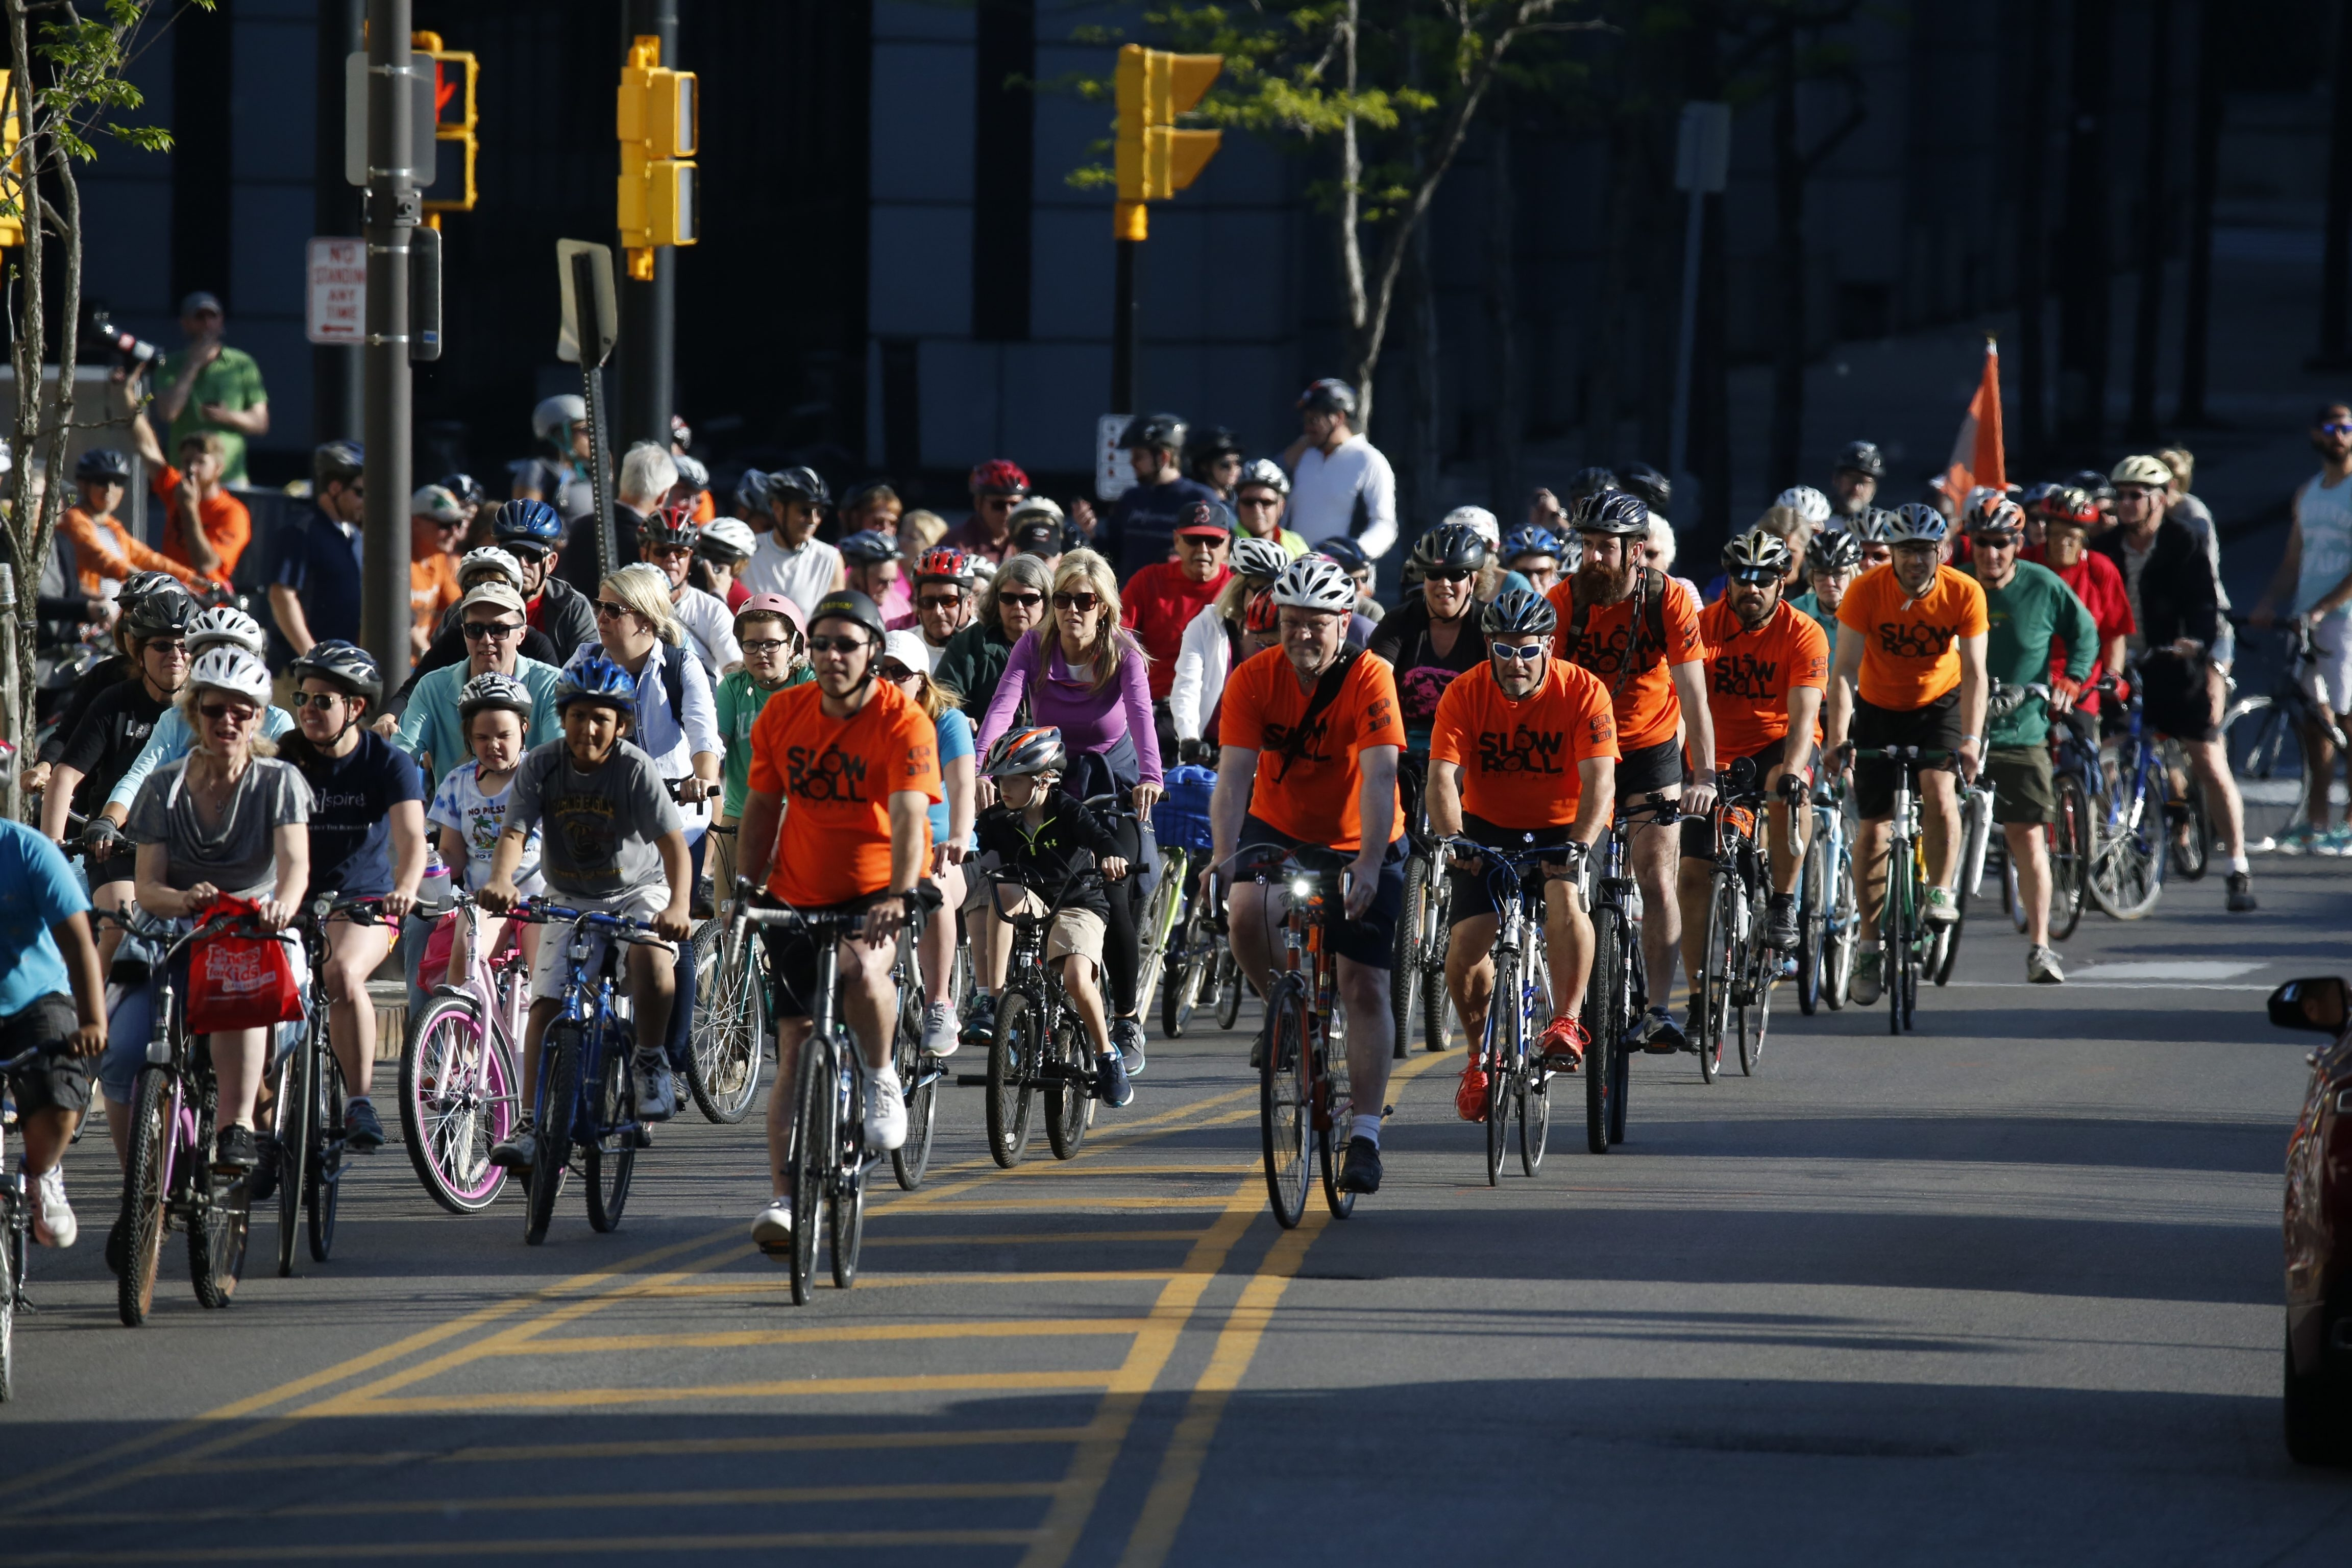 Slow Roll riders make their way up Washington Street in May. Slow Roll organizers have promised riders will be sure not to block access to hospitals after a Buffalo General staffer complained on Facebook. (Harry Scull Jr./Buffalo News file photo)